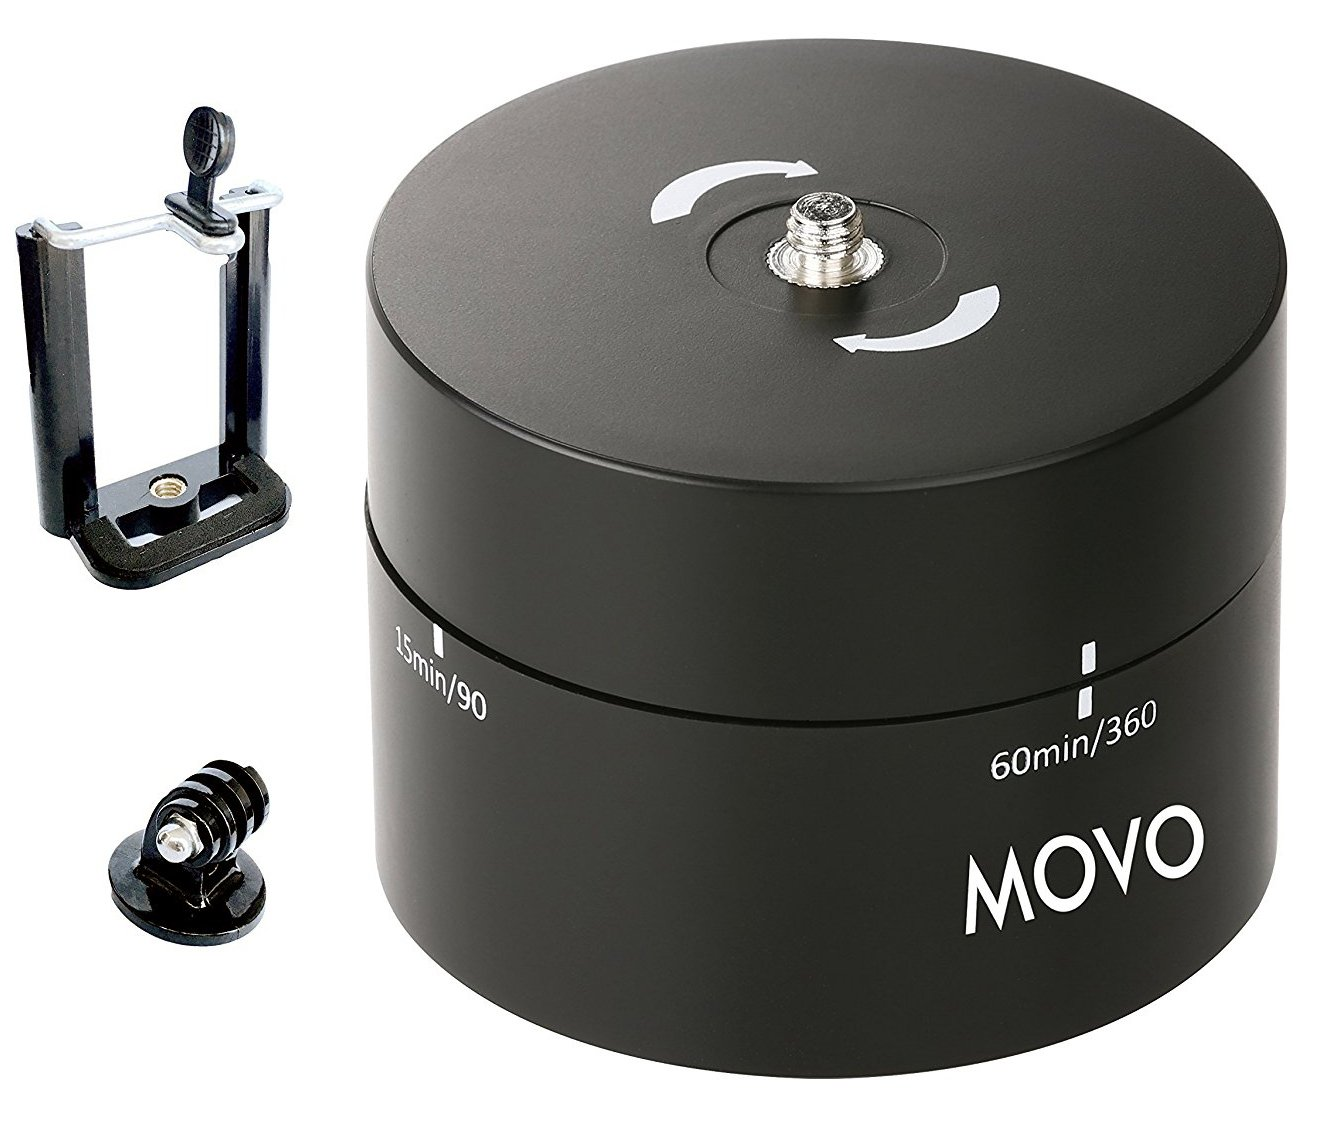 Movo Photo MTP1000 Panaromic 360°/ 60-Minute Time Lapse Tripod Head for Cameras, DSLR's, GoPro's and Smartphones (Supports up to 4.4 LBS)